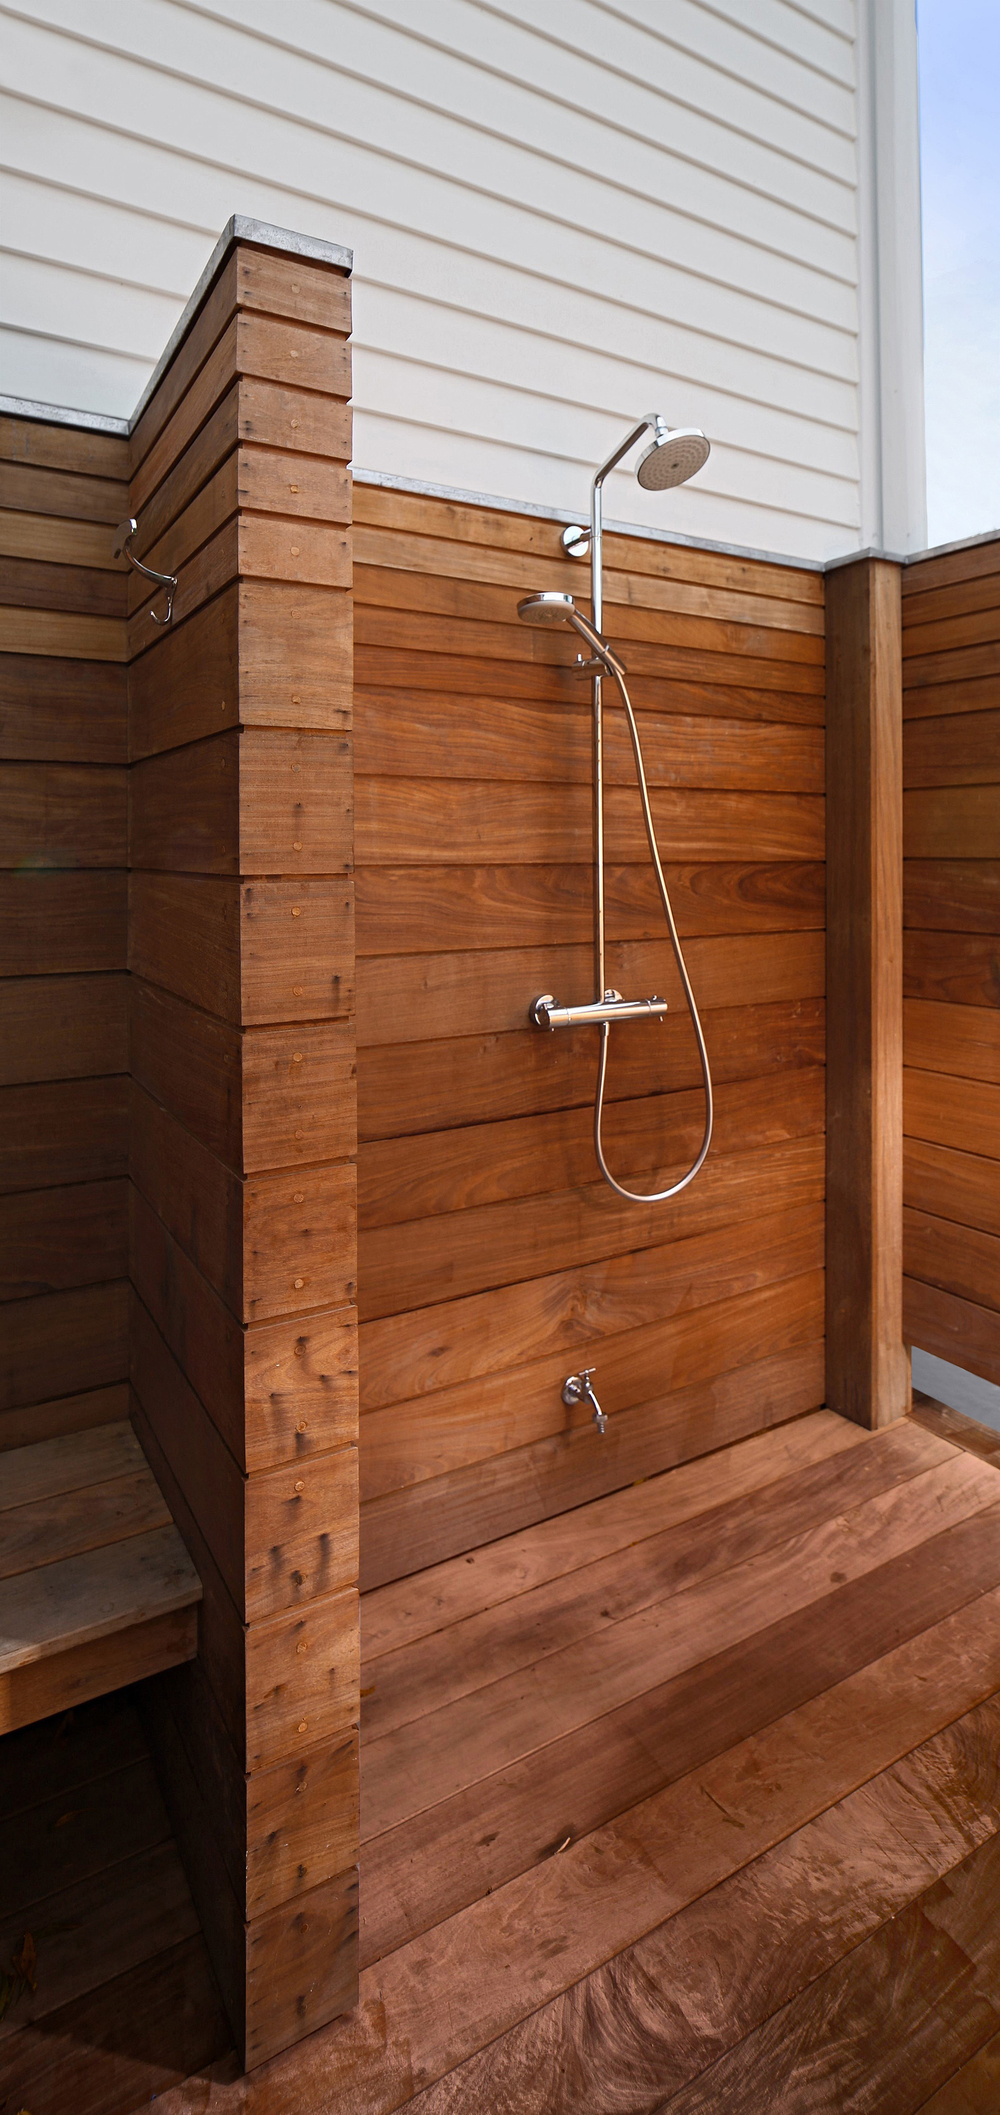 9-Interior Shower with Shower Head.jpg